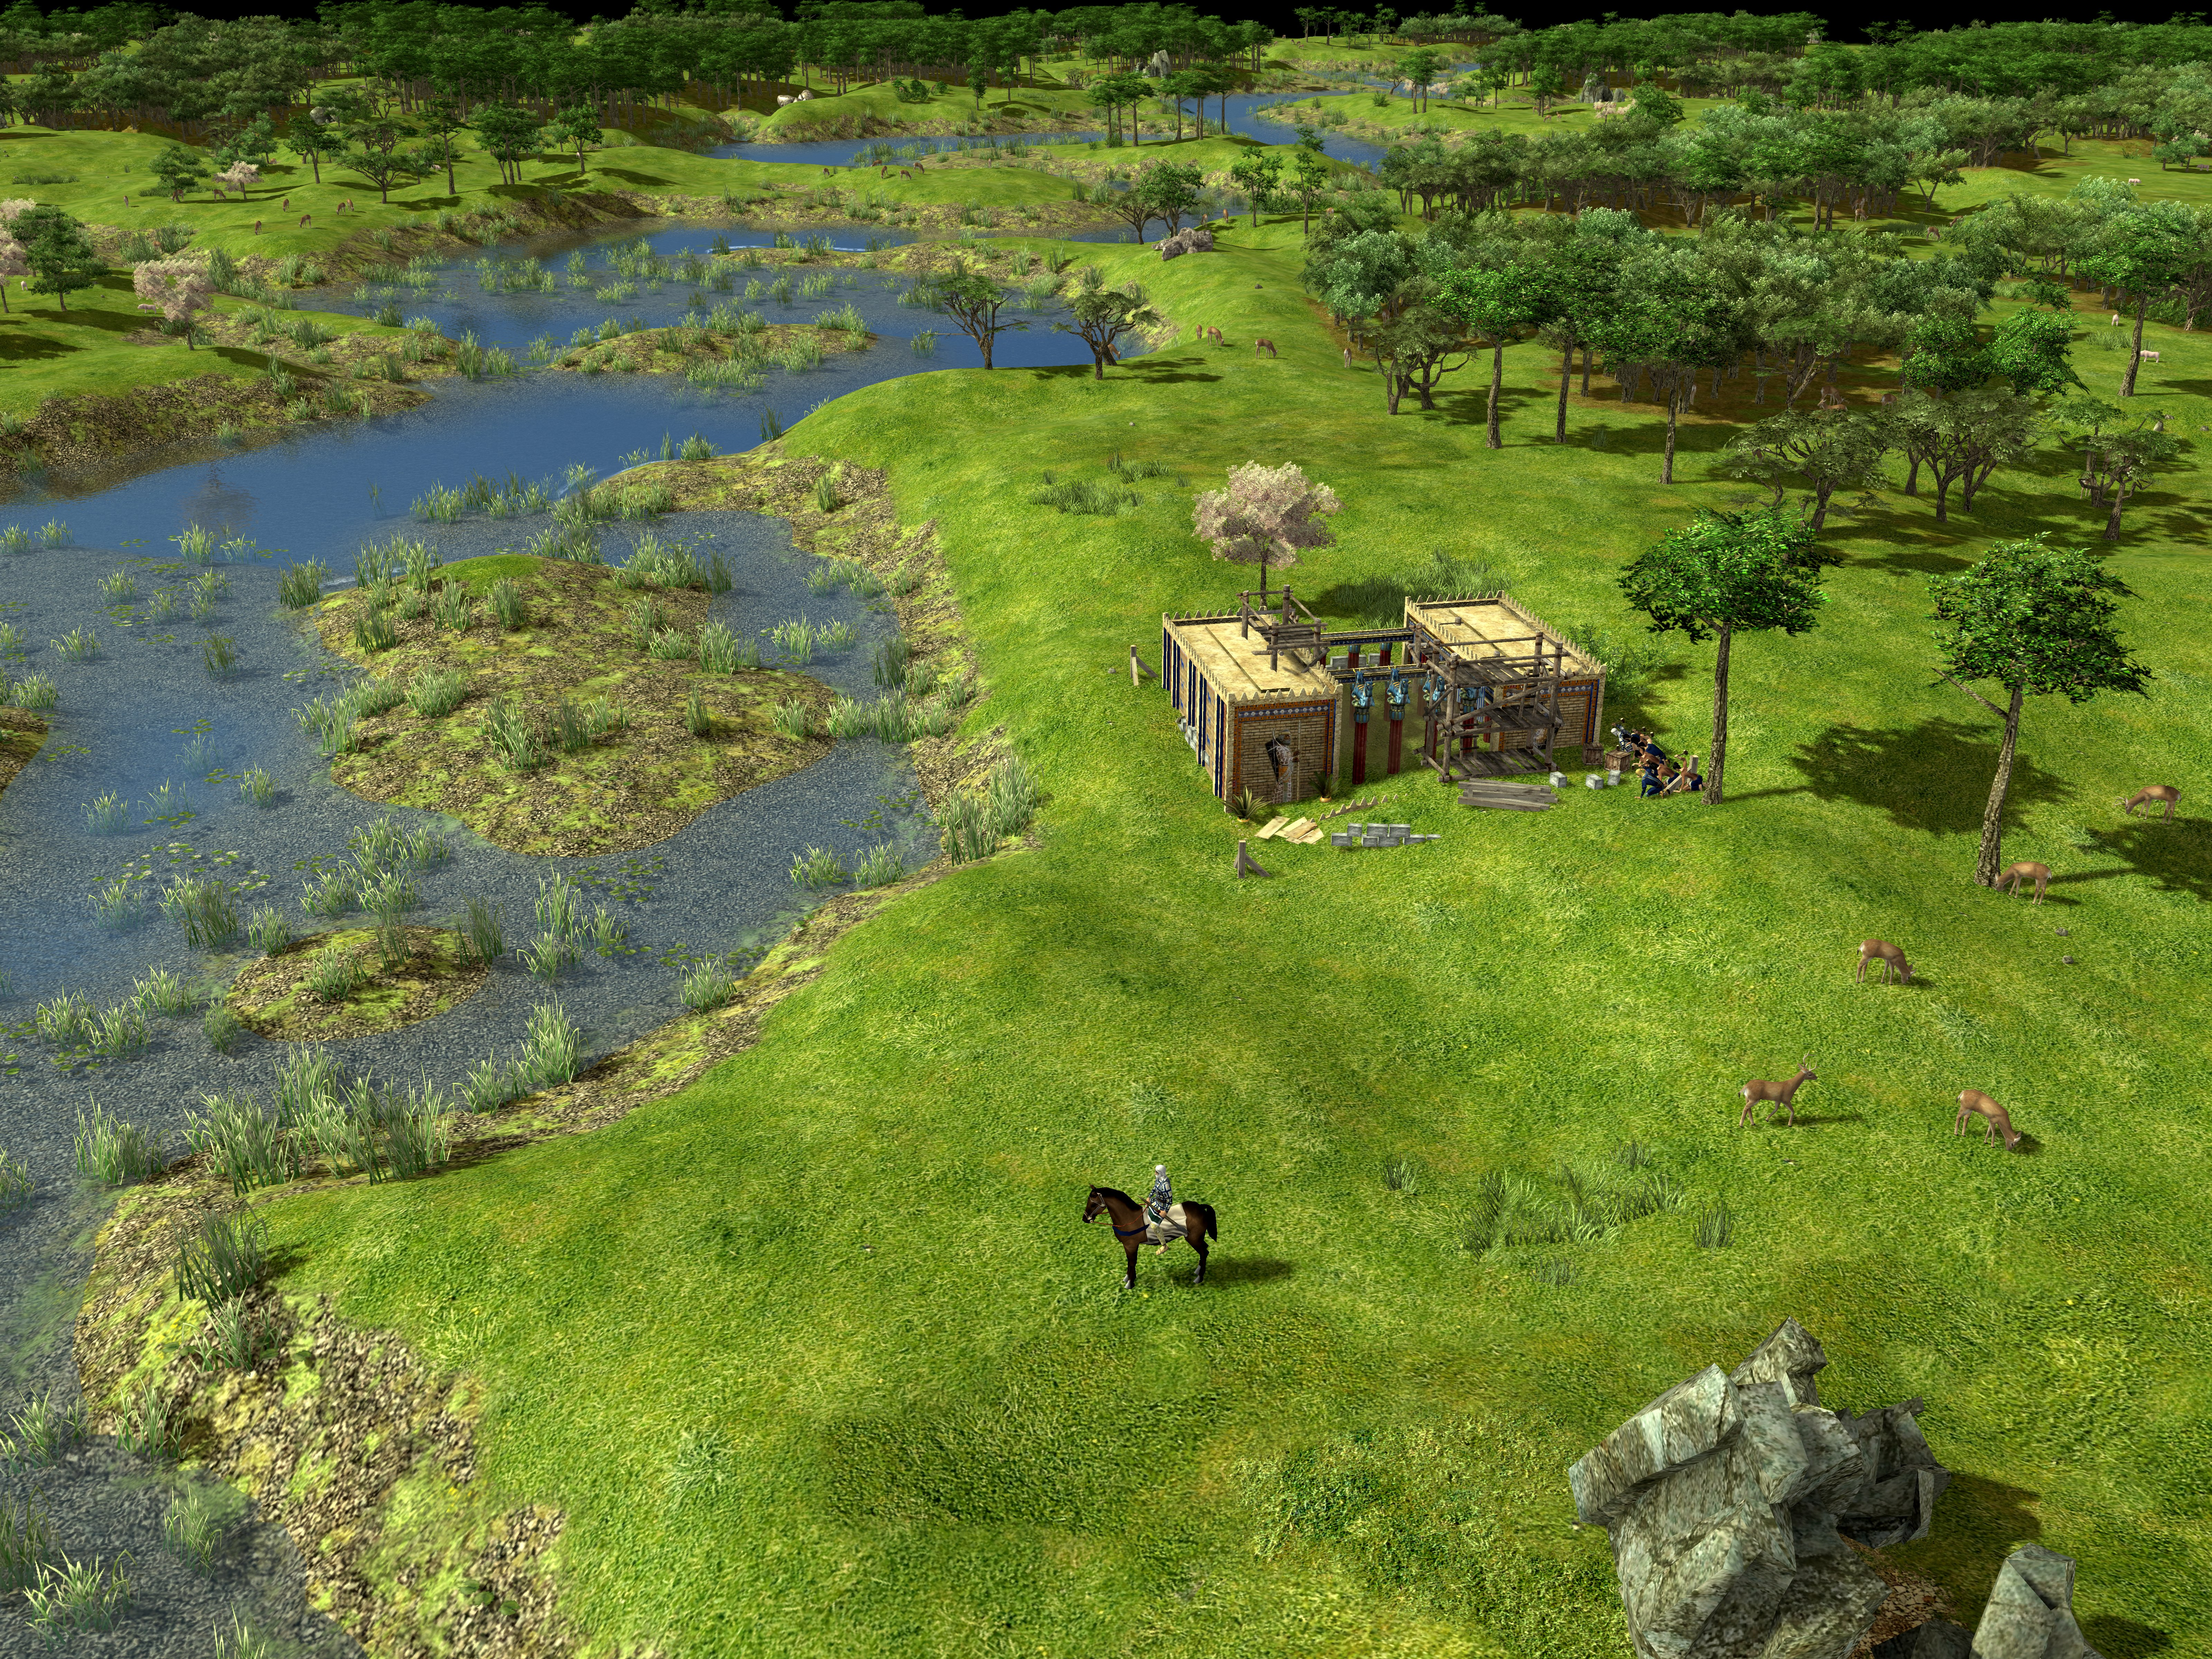 A Persian player starting the city at